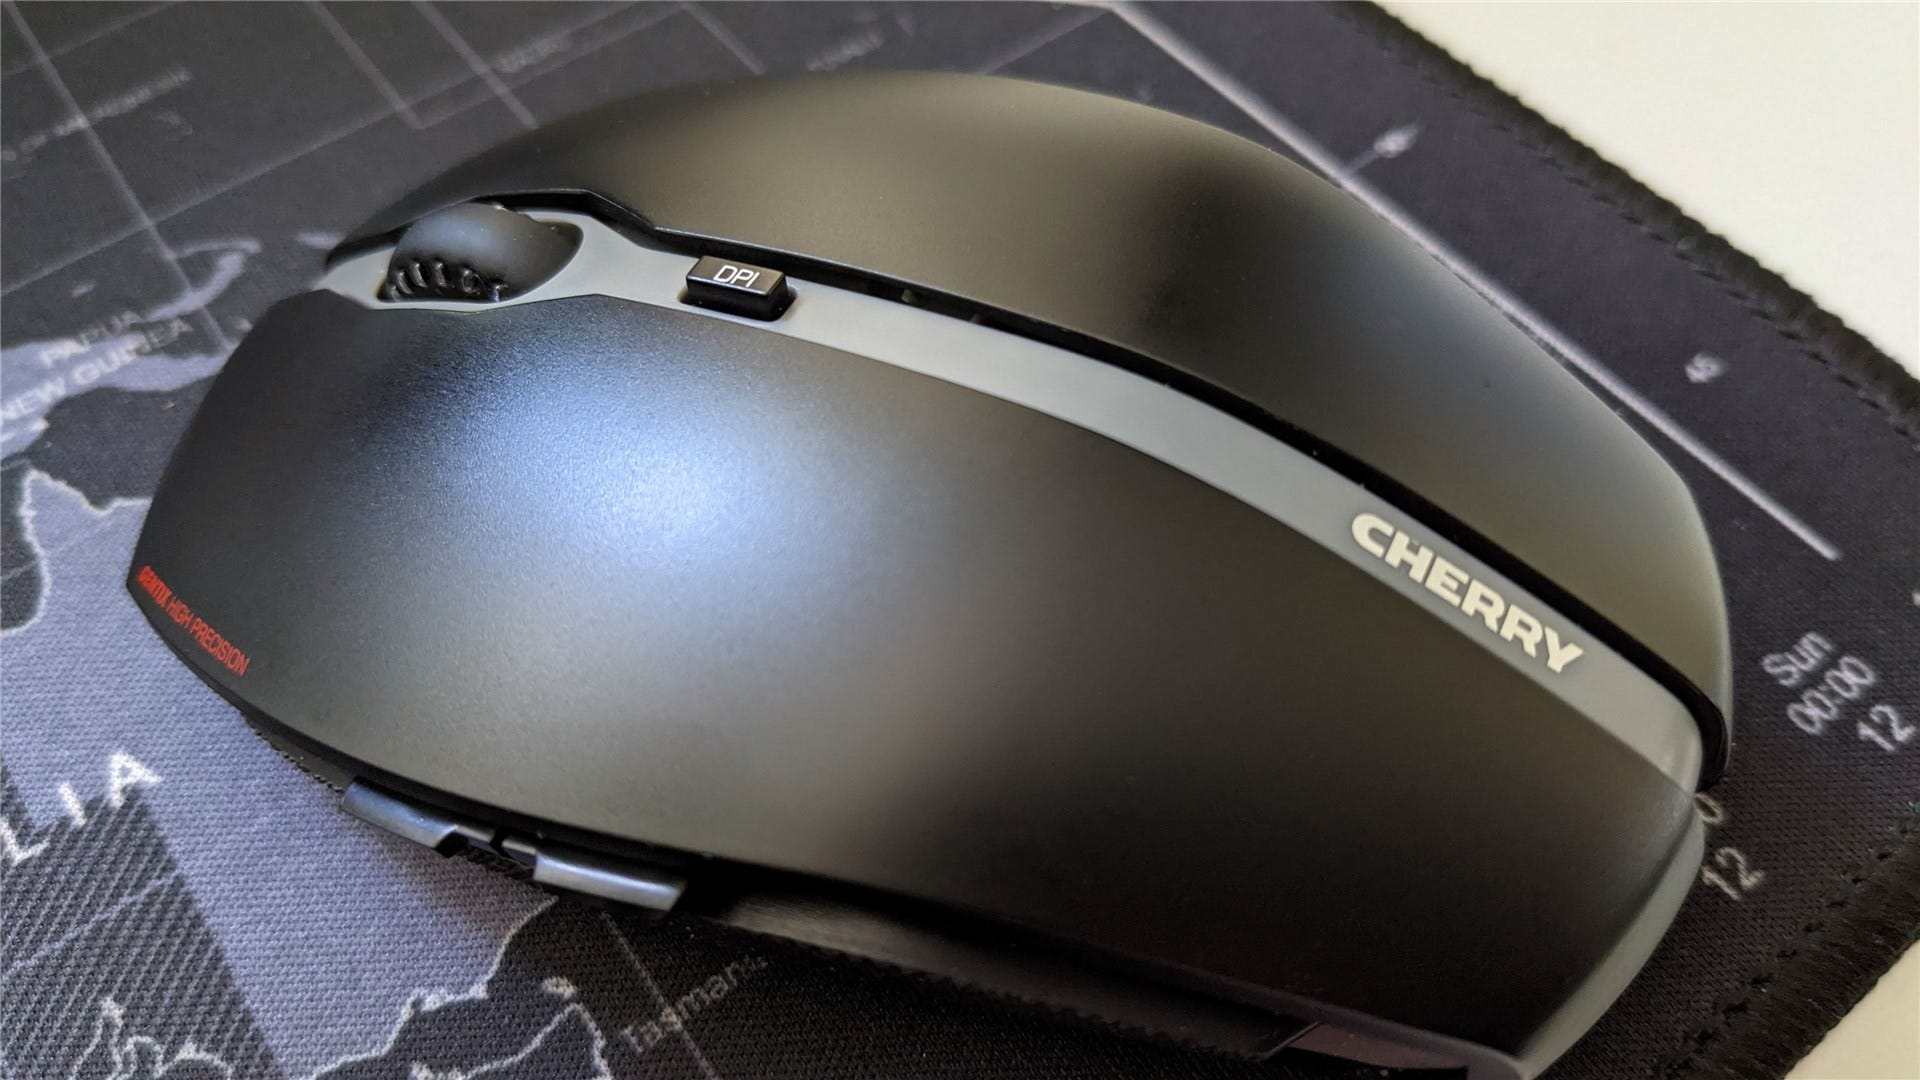 The Cherry Gentix mouse with a focus on the DPI button